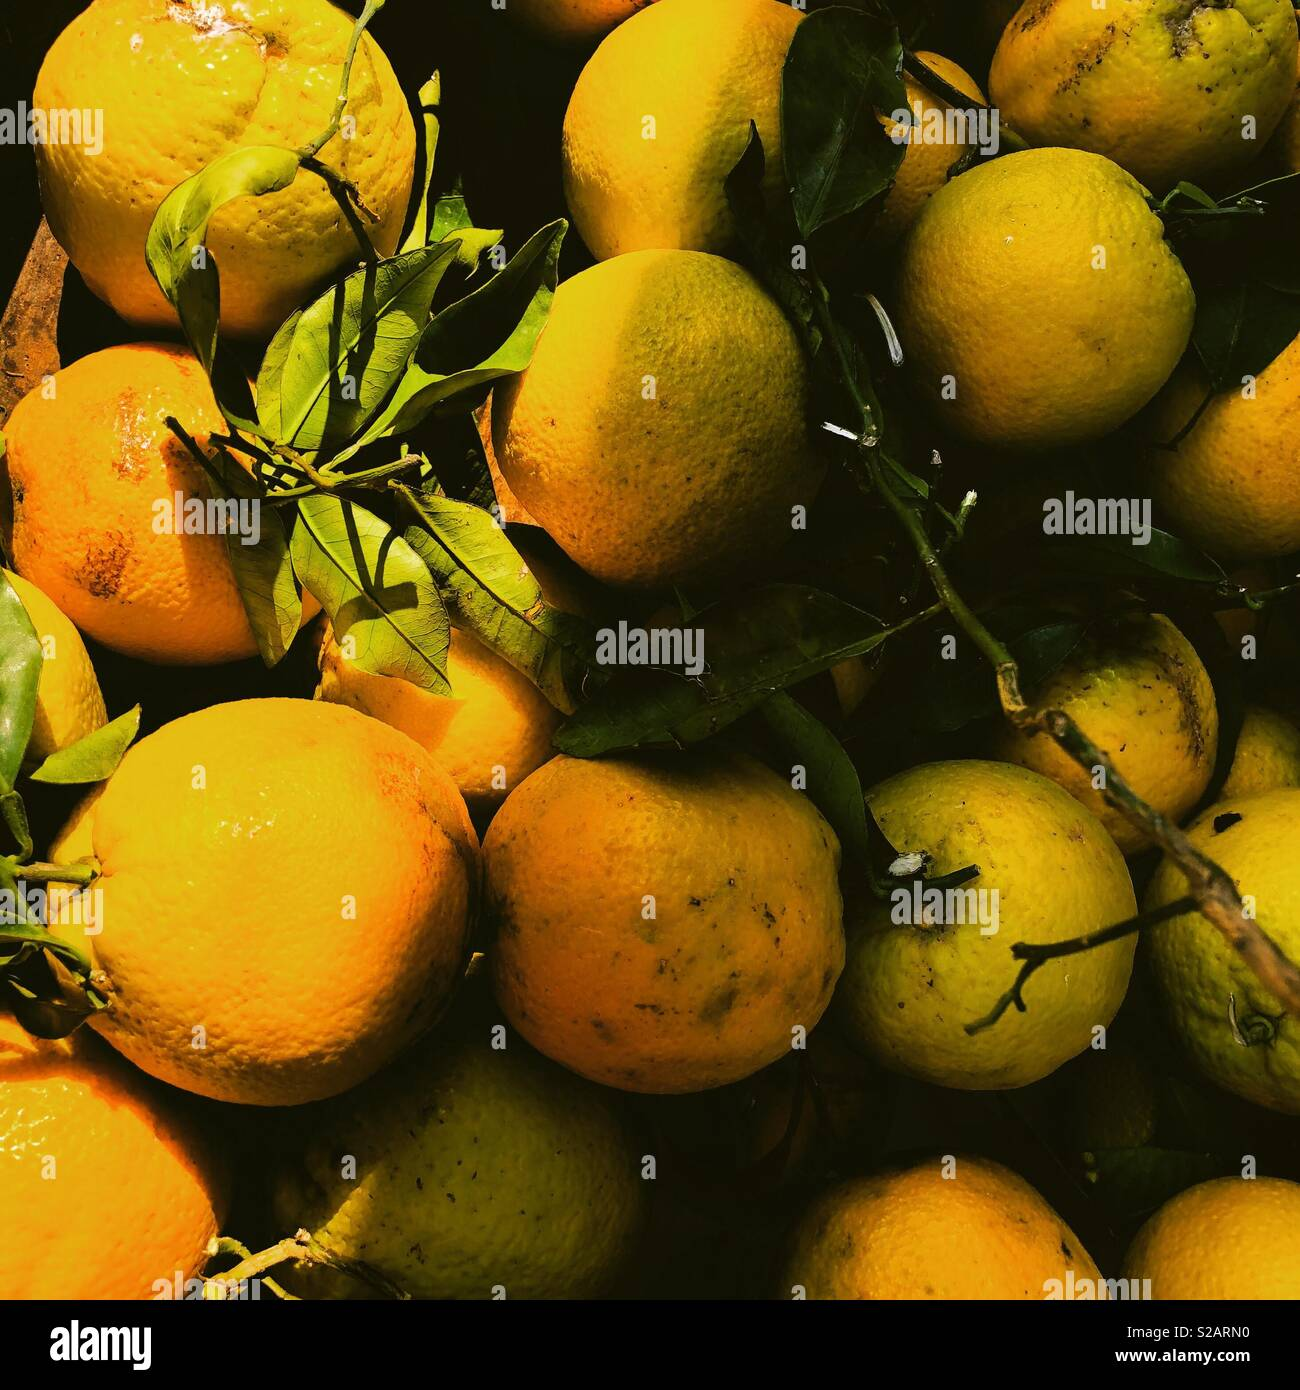 Oranges in the Saturday market in Voulagmeni Athens Greece - Stock Image